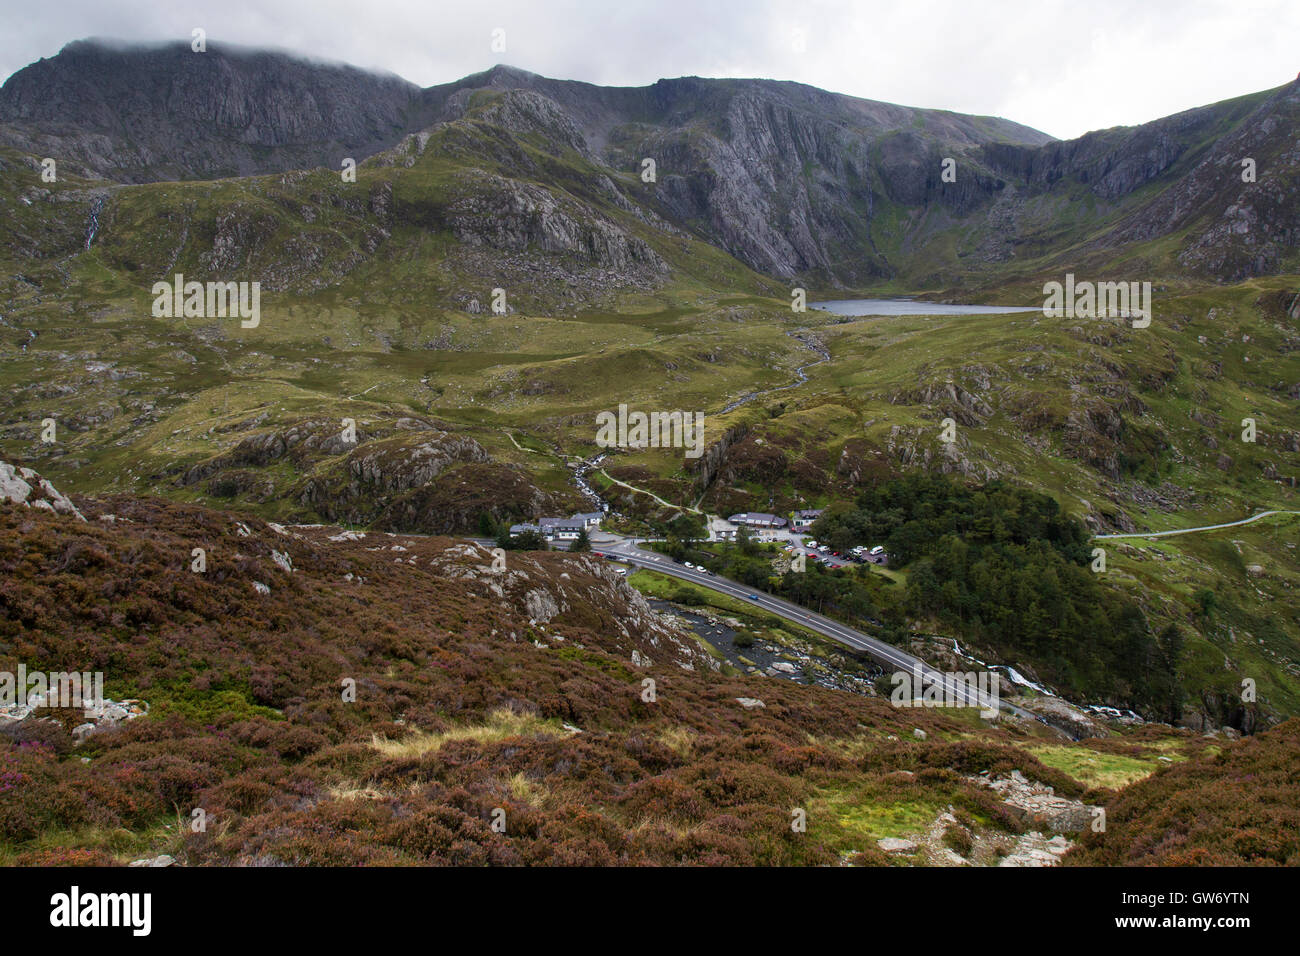 Looking down on to the A5 road in North Wales, with Llyn (Lake) Idwal in the backgound, The Devil's Kitchen - Stock Image